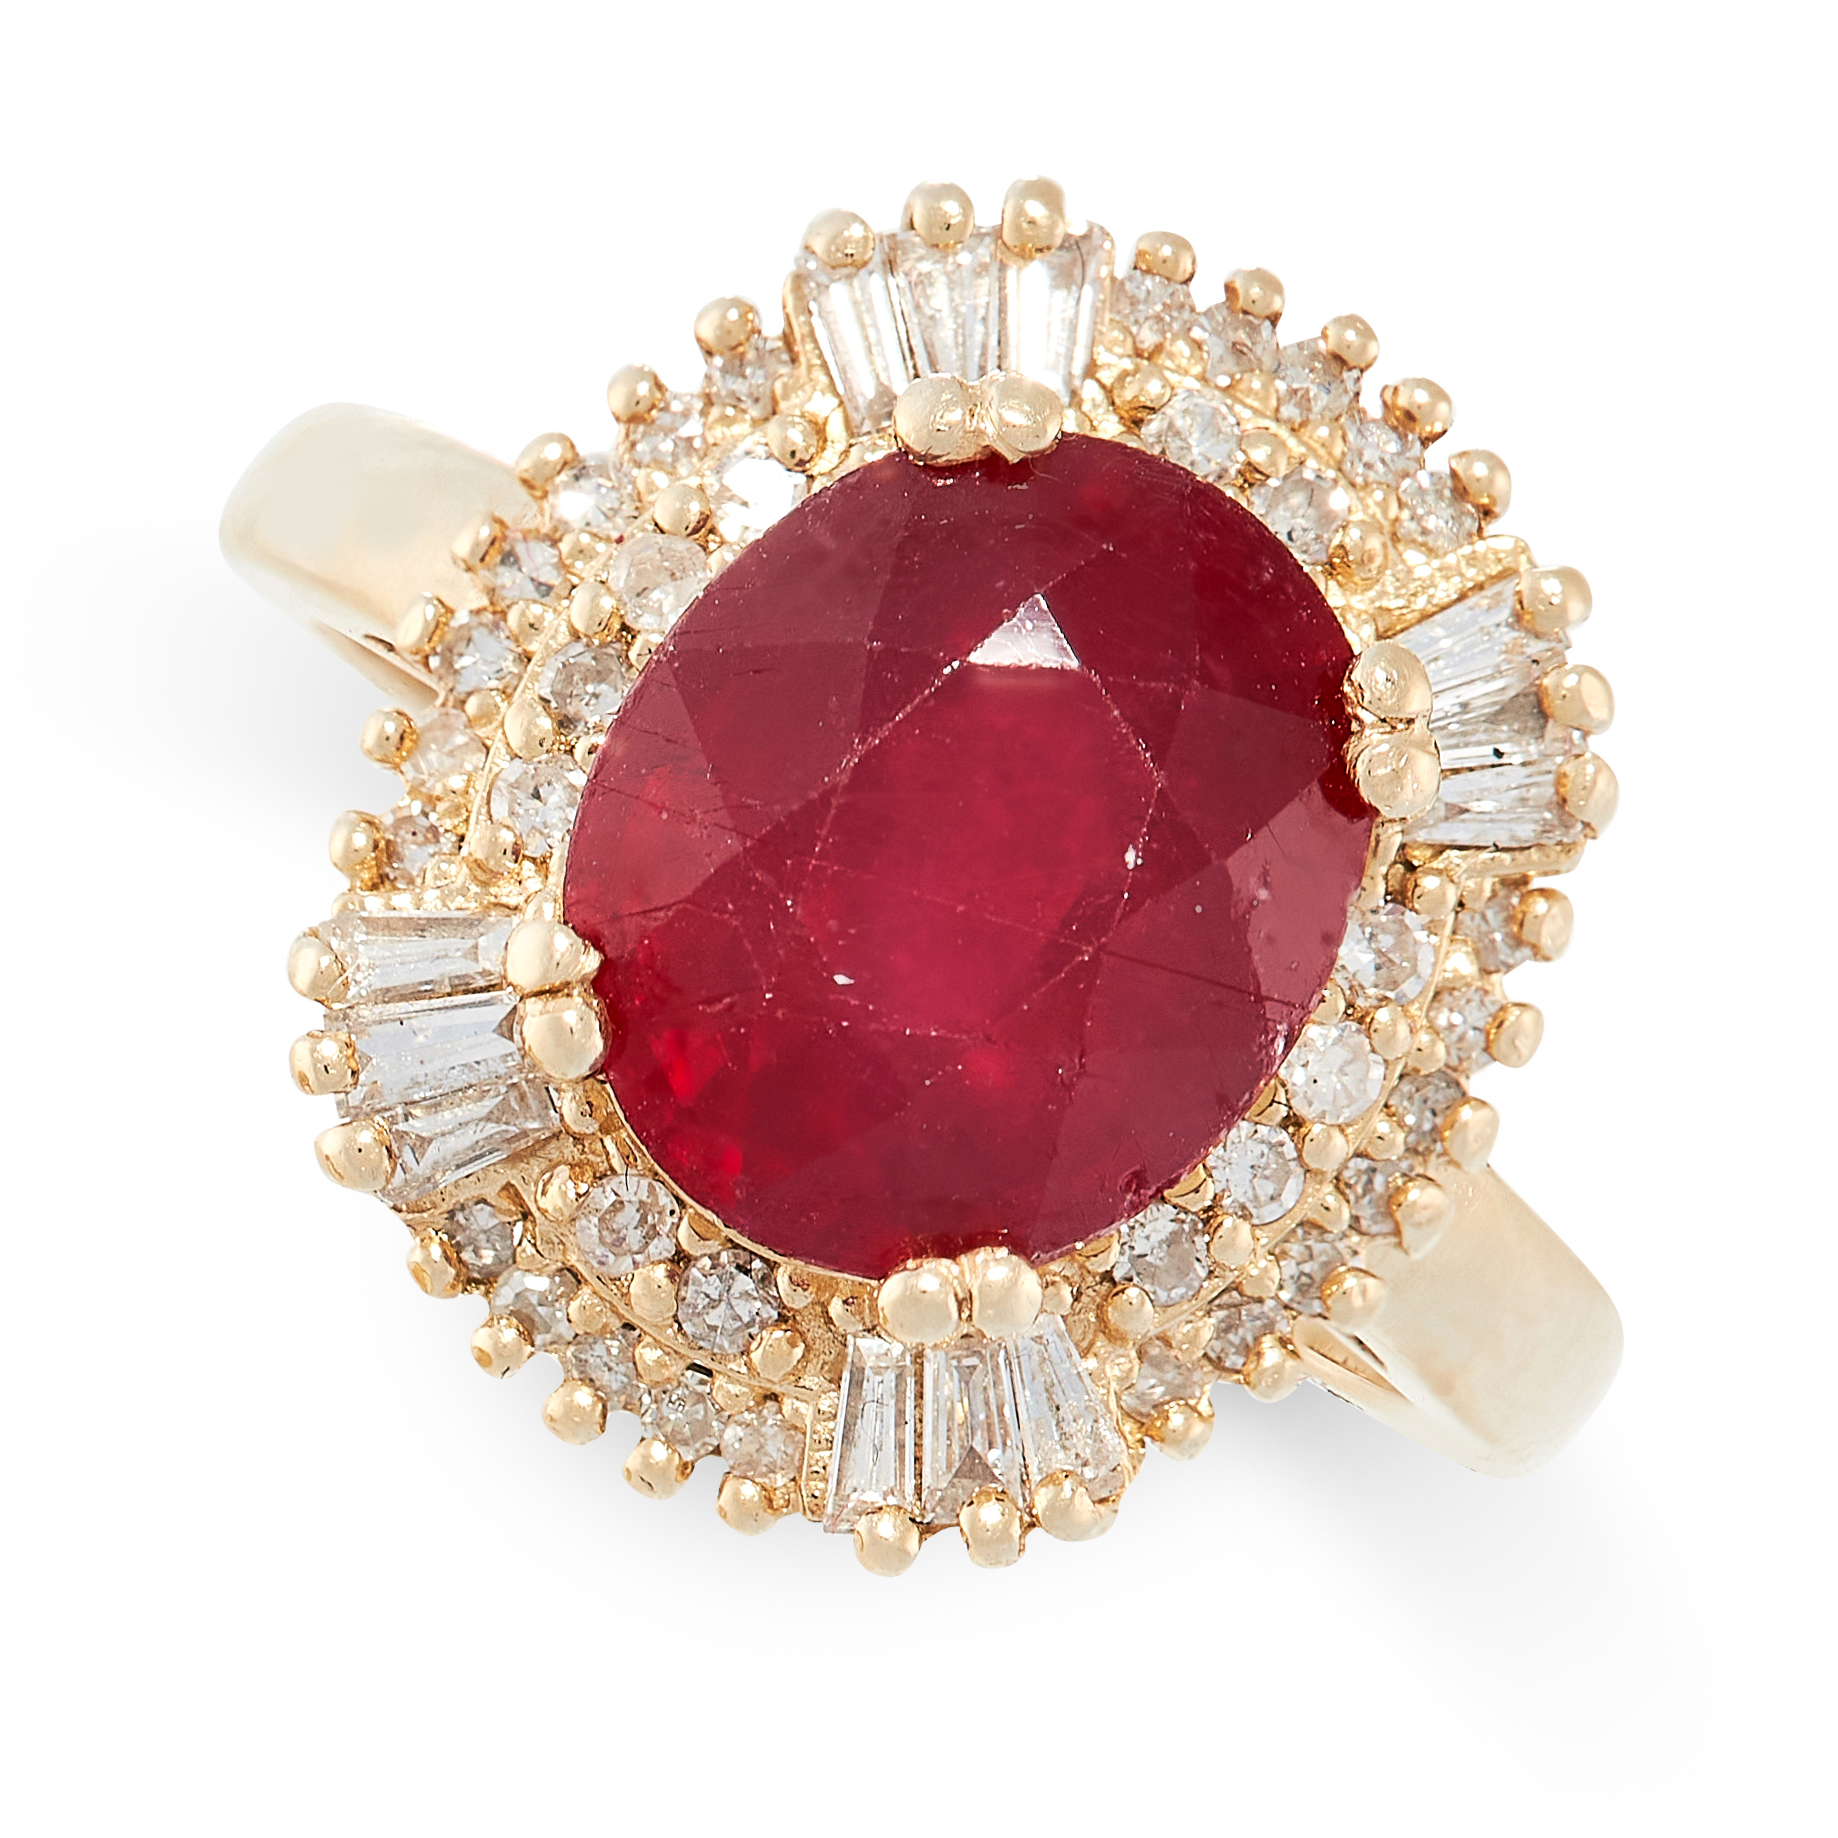 A RUBY AND DIAMOND RING in 14ct yellow gold, designed as a cluster, set with an oval cut ruby of 4.